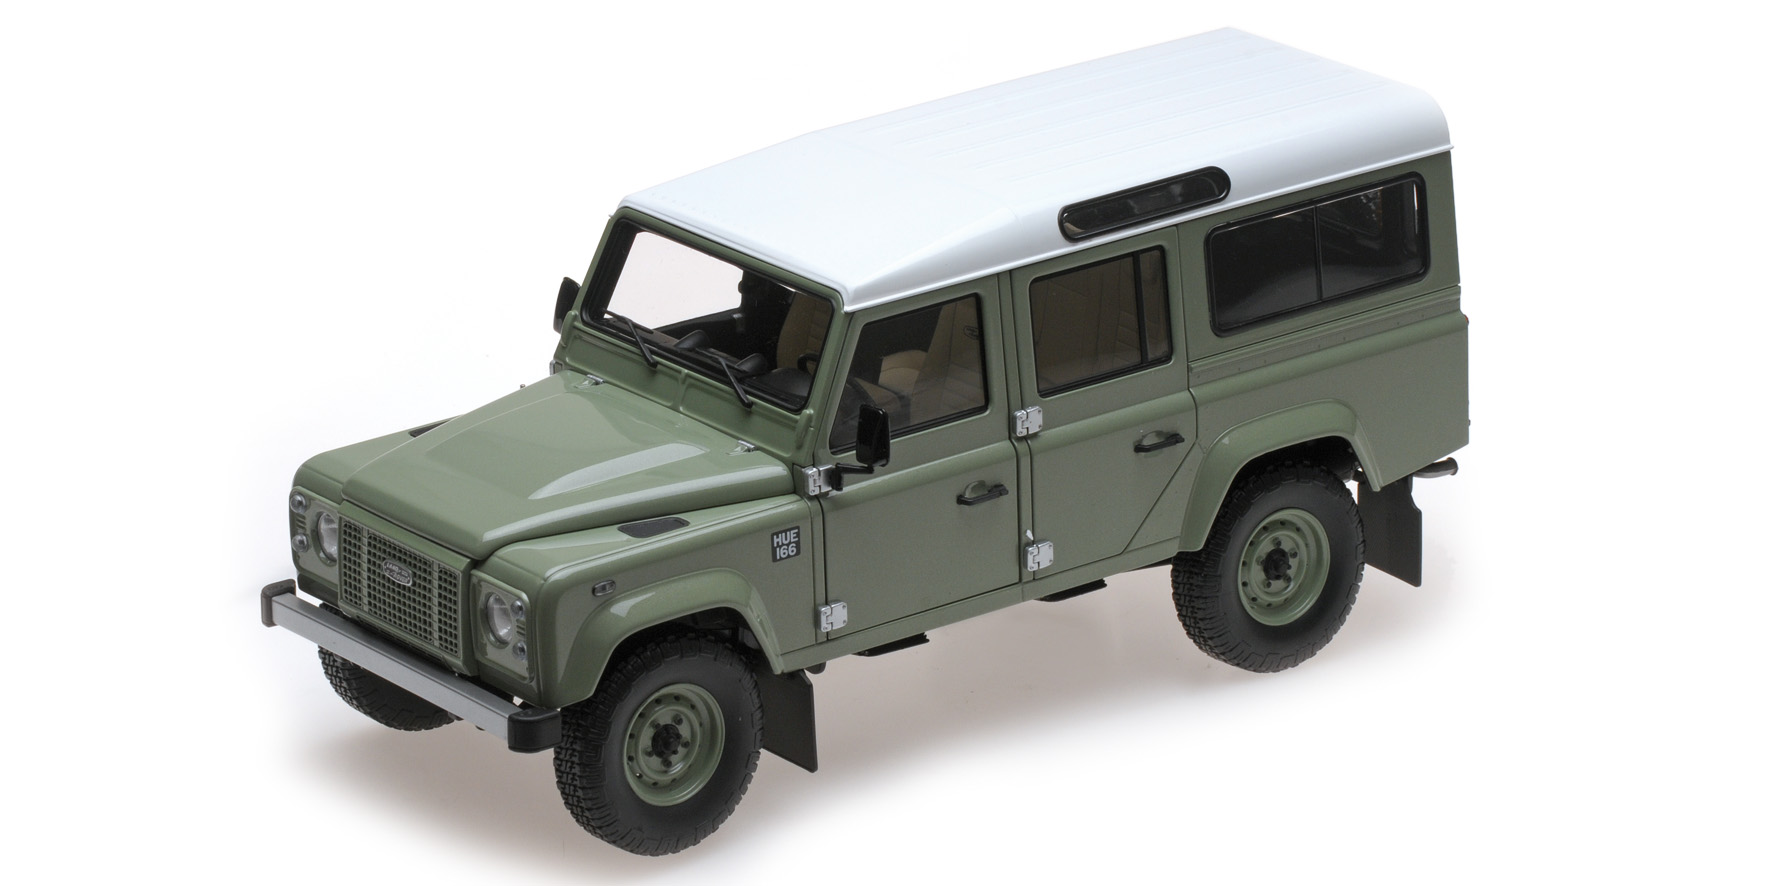 Land Rover Defender 110 2015, Heritage edition (green)